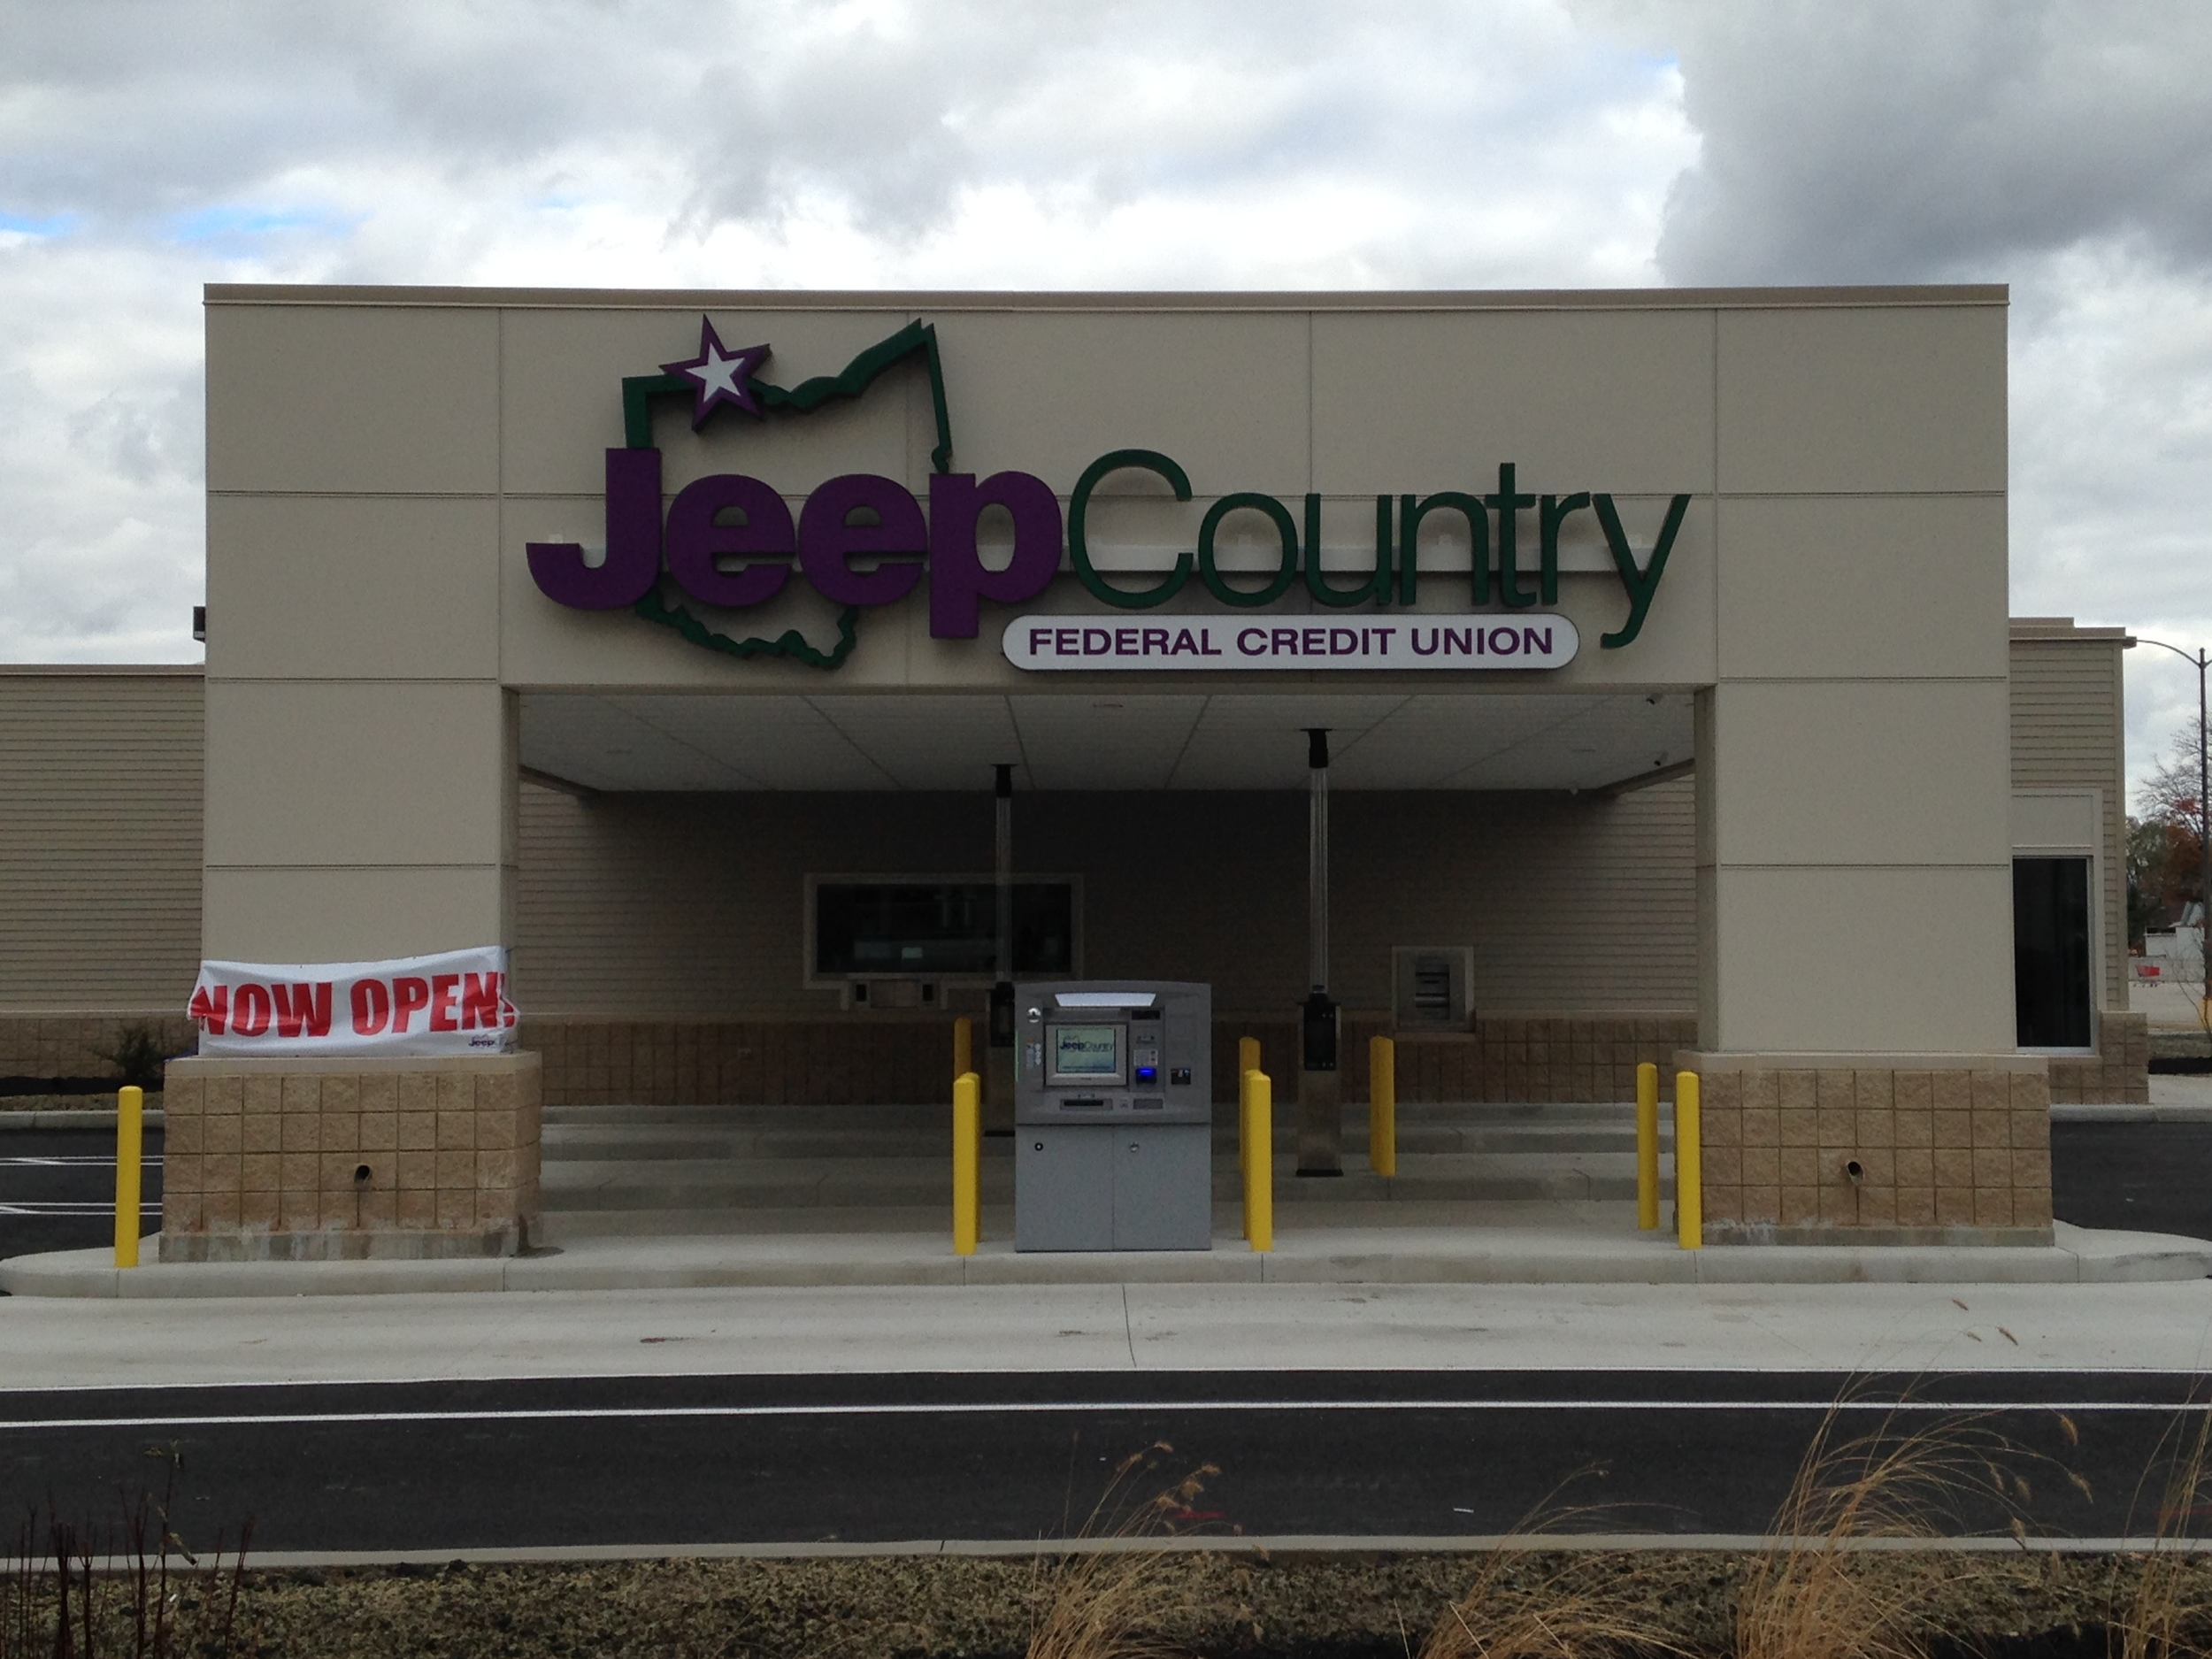 JEEP COUNTRY FEDERAL CREDIT UNION